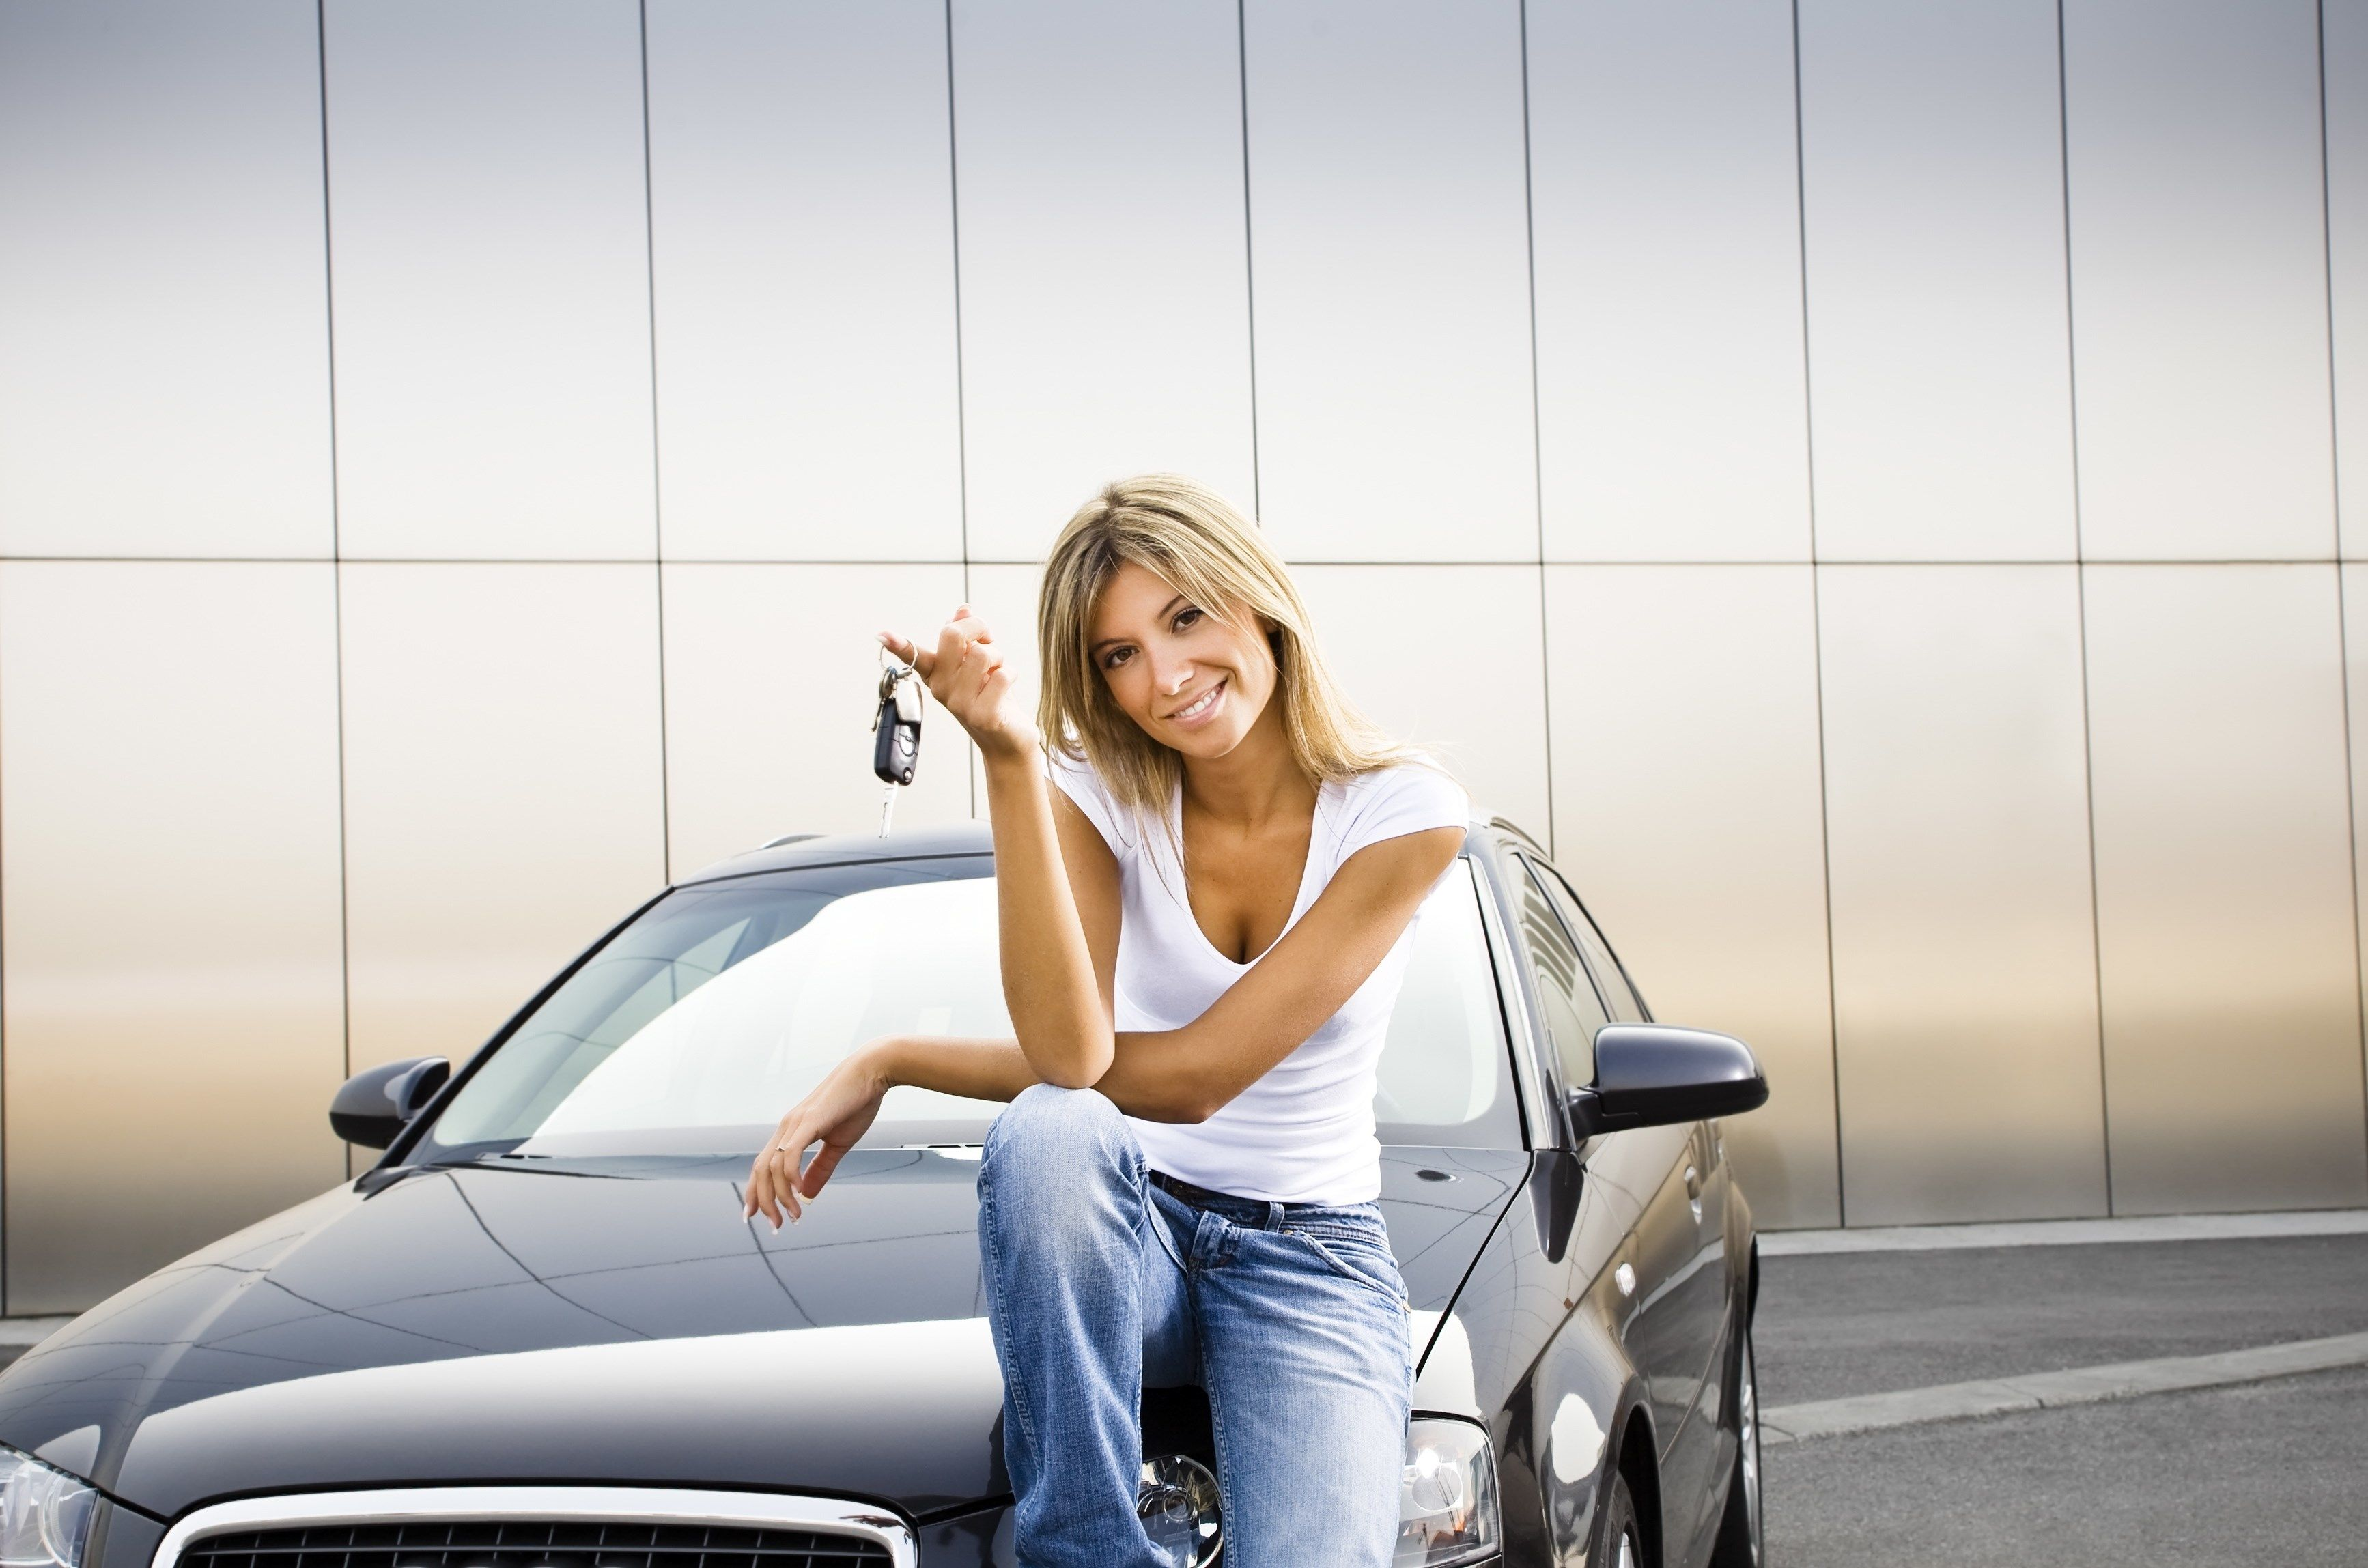 girls and cars (With images) | Cheap car insurance, Cheap ...